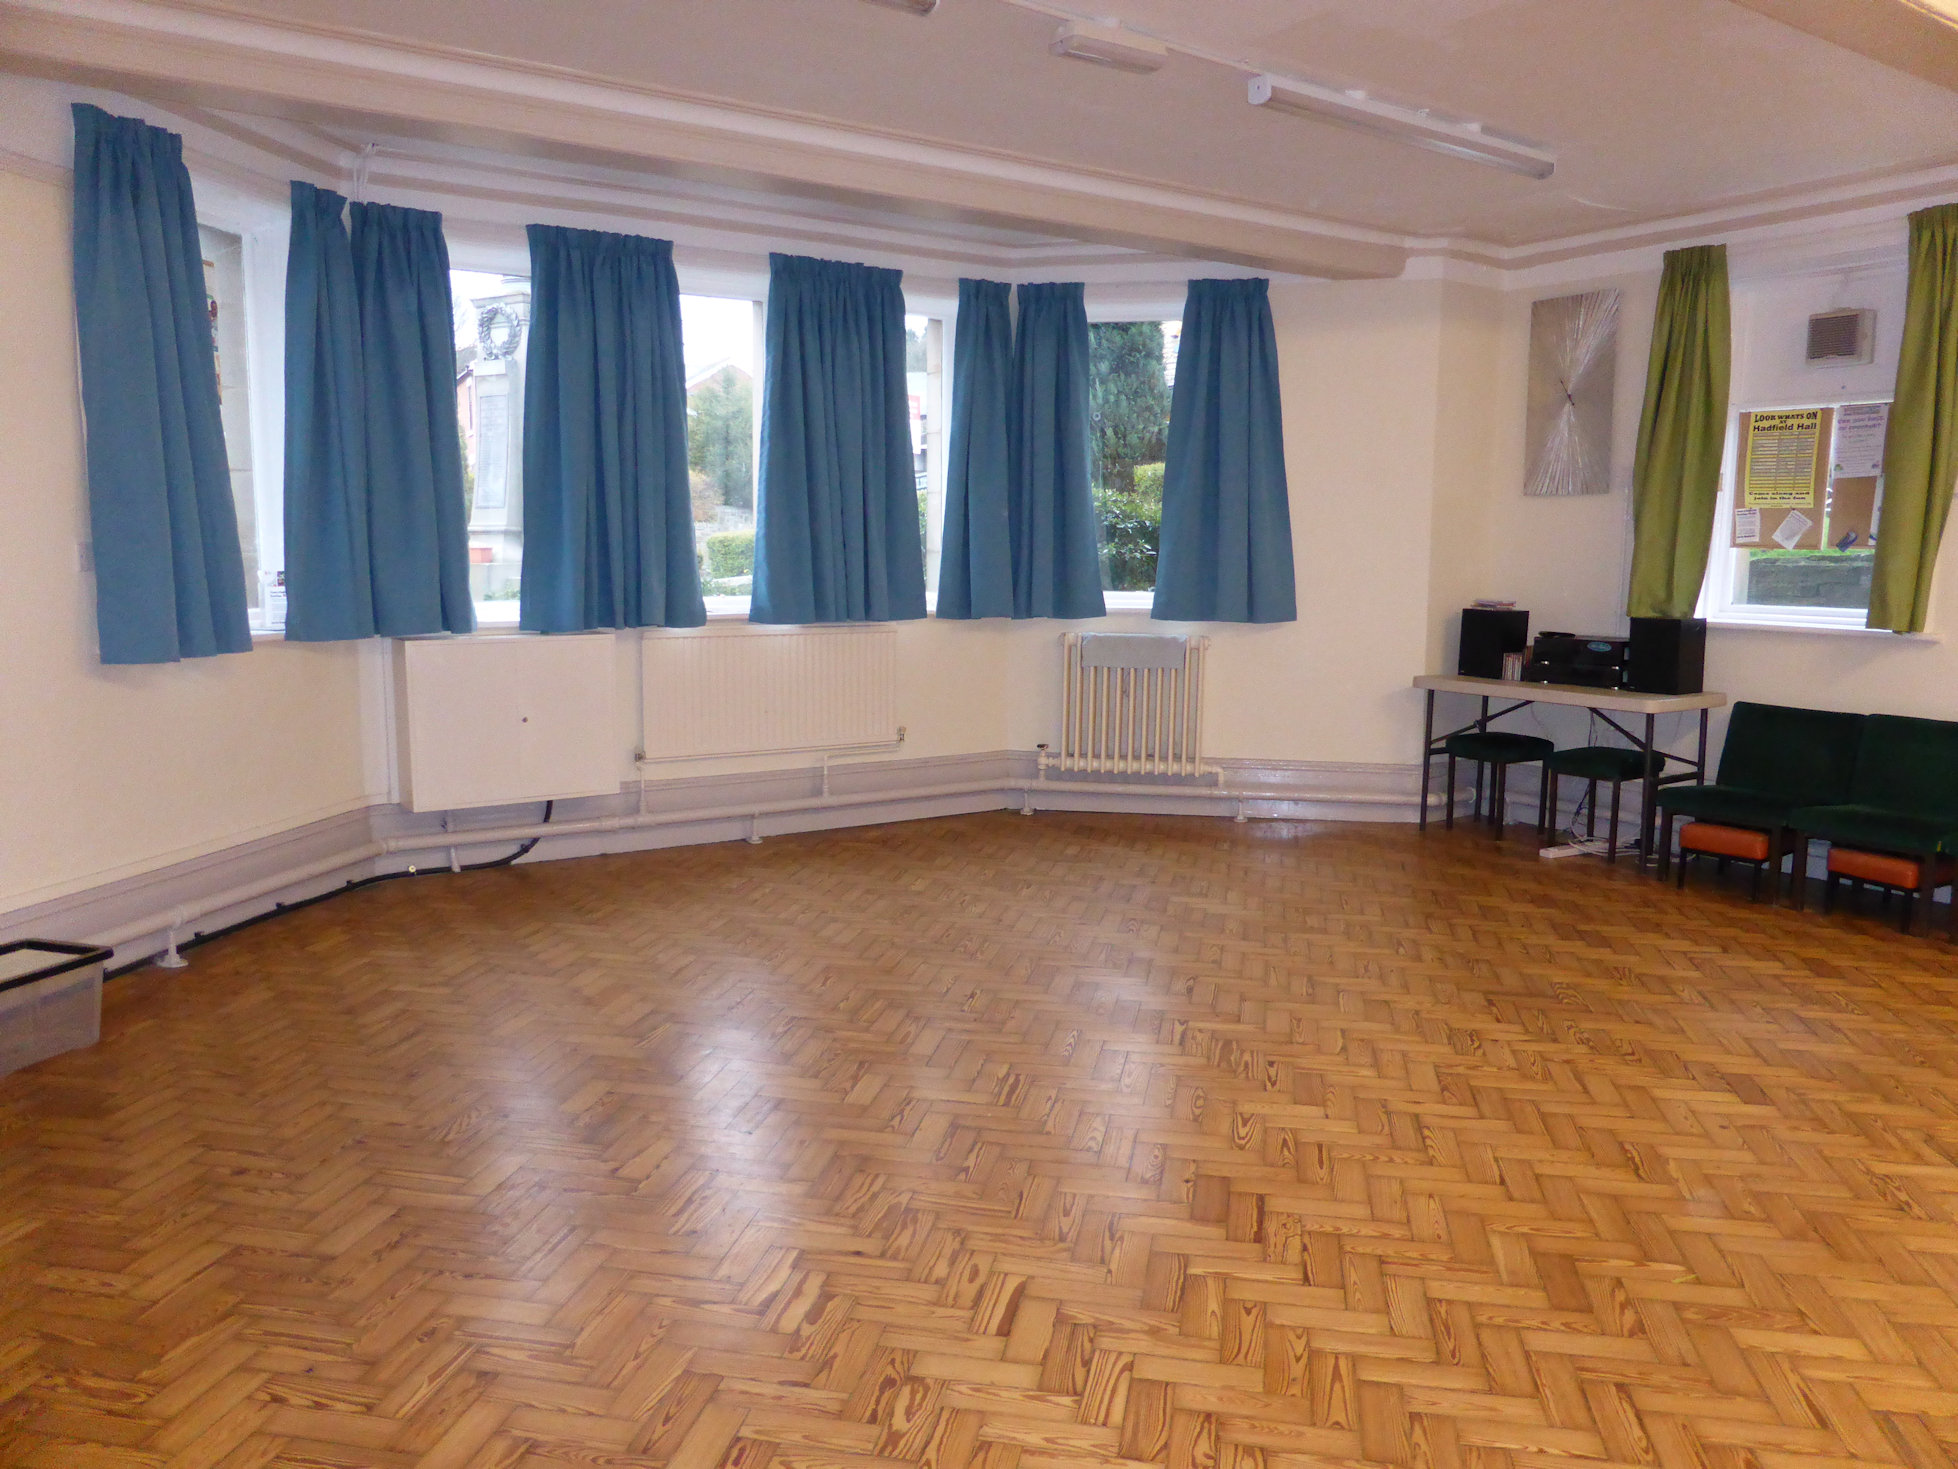 Hadfield Hall - Community Room